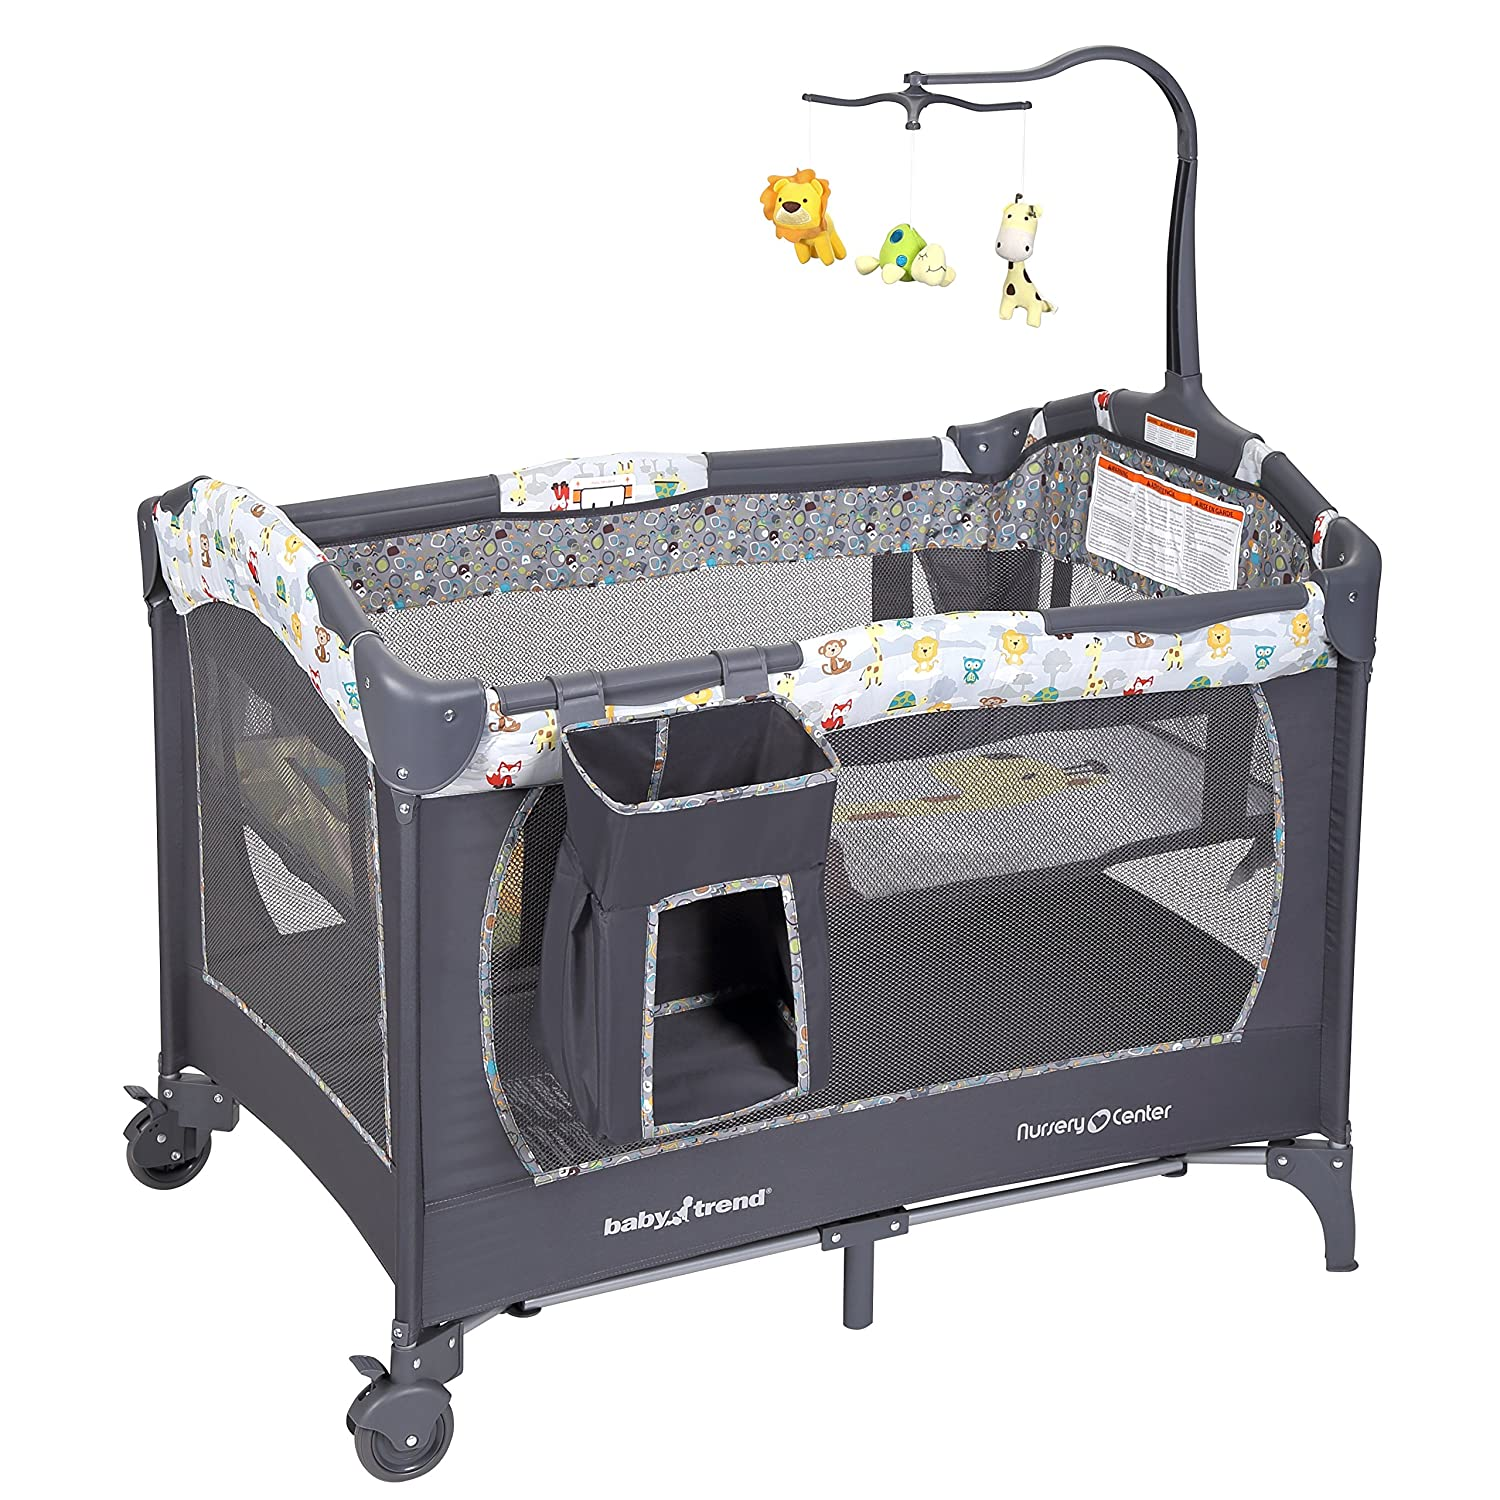 Baby Trend Nursery Center, Floral Garden PY81976